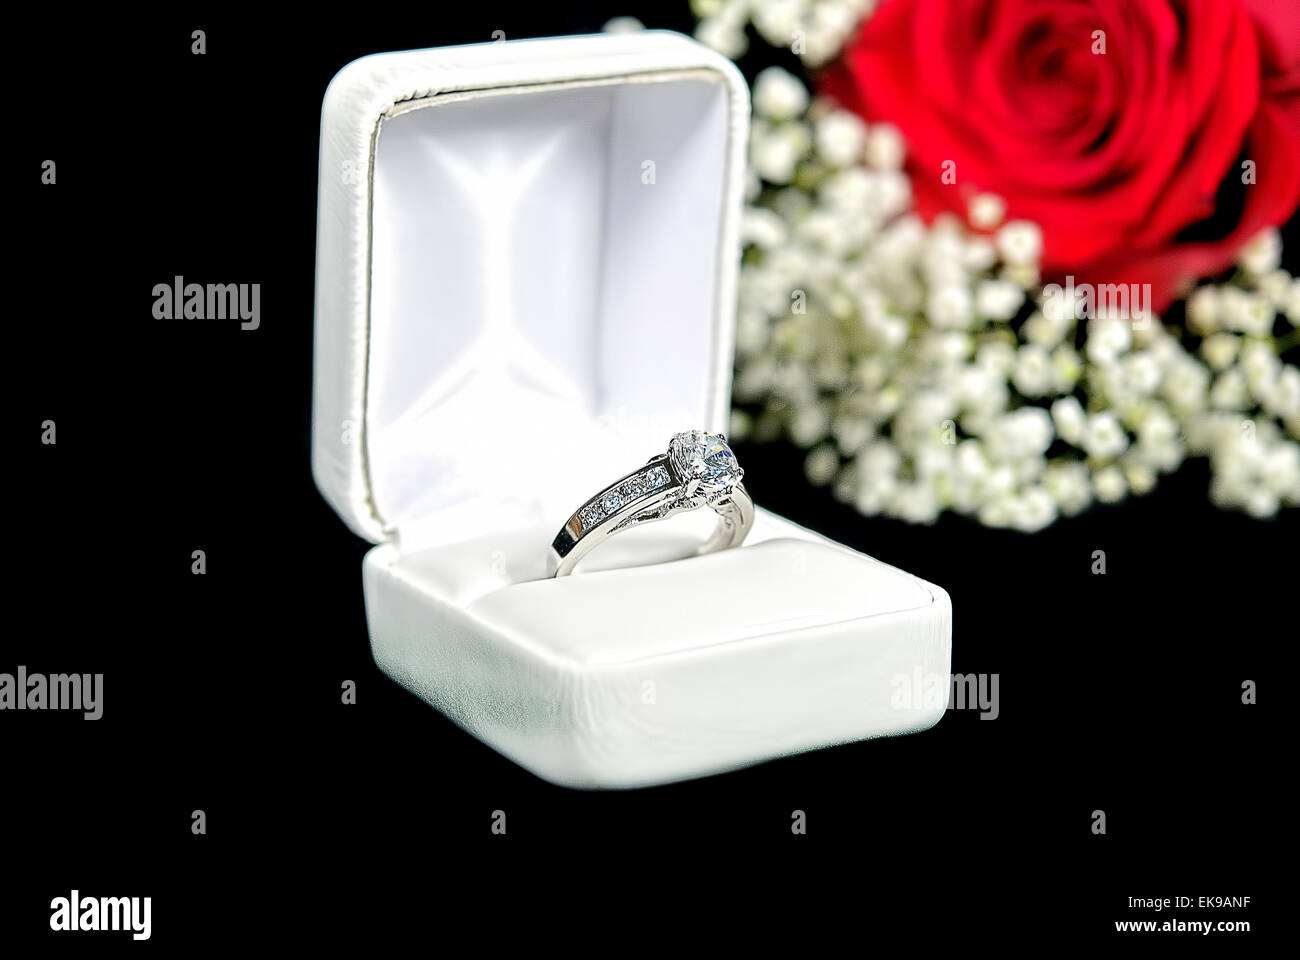 Diamond ring in white box with red rose on black. - Stock Image